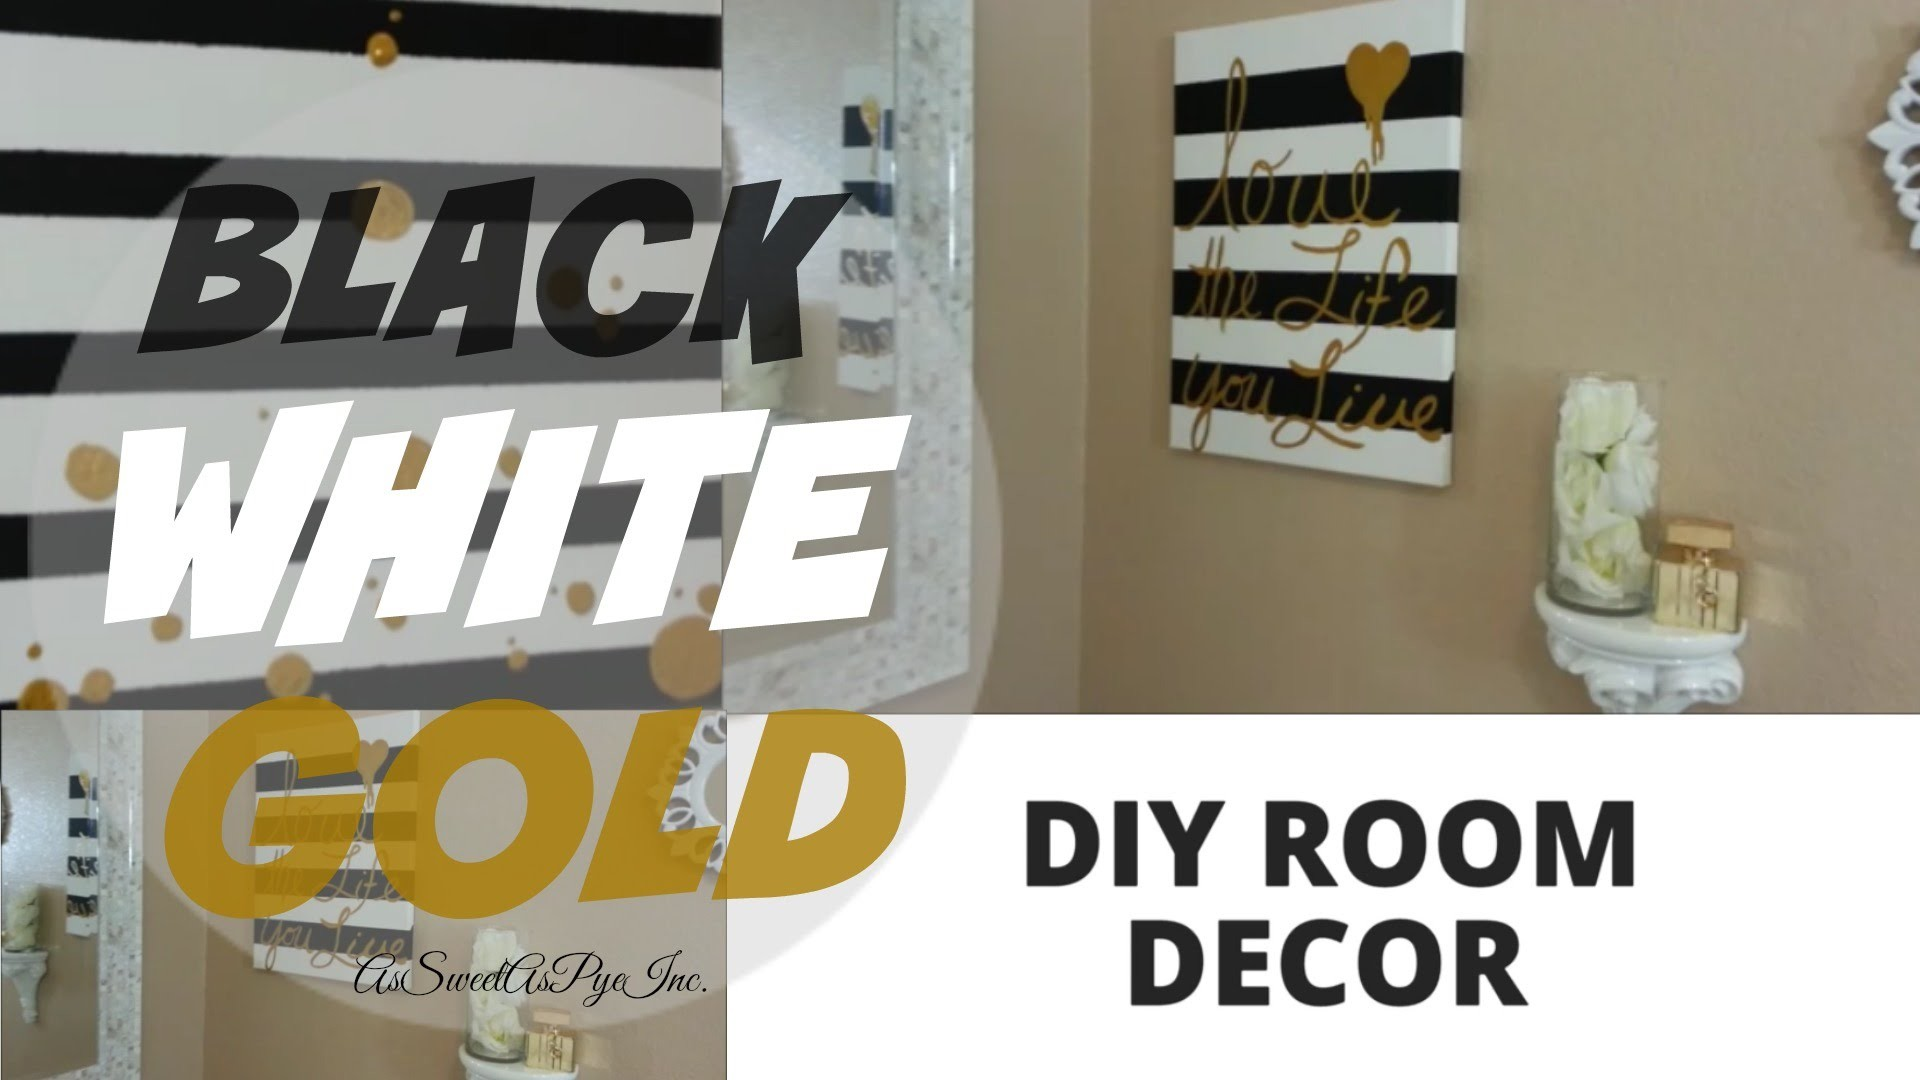 Black White And Gold Bedroom Ideas Diy Room Decor Black White Gold Youtube  Minimalist Design Pictures